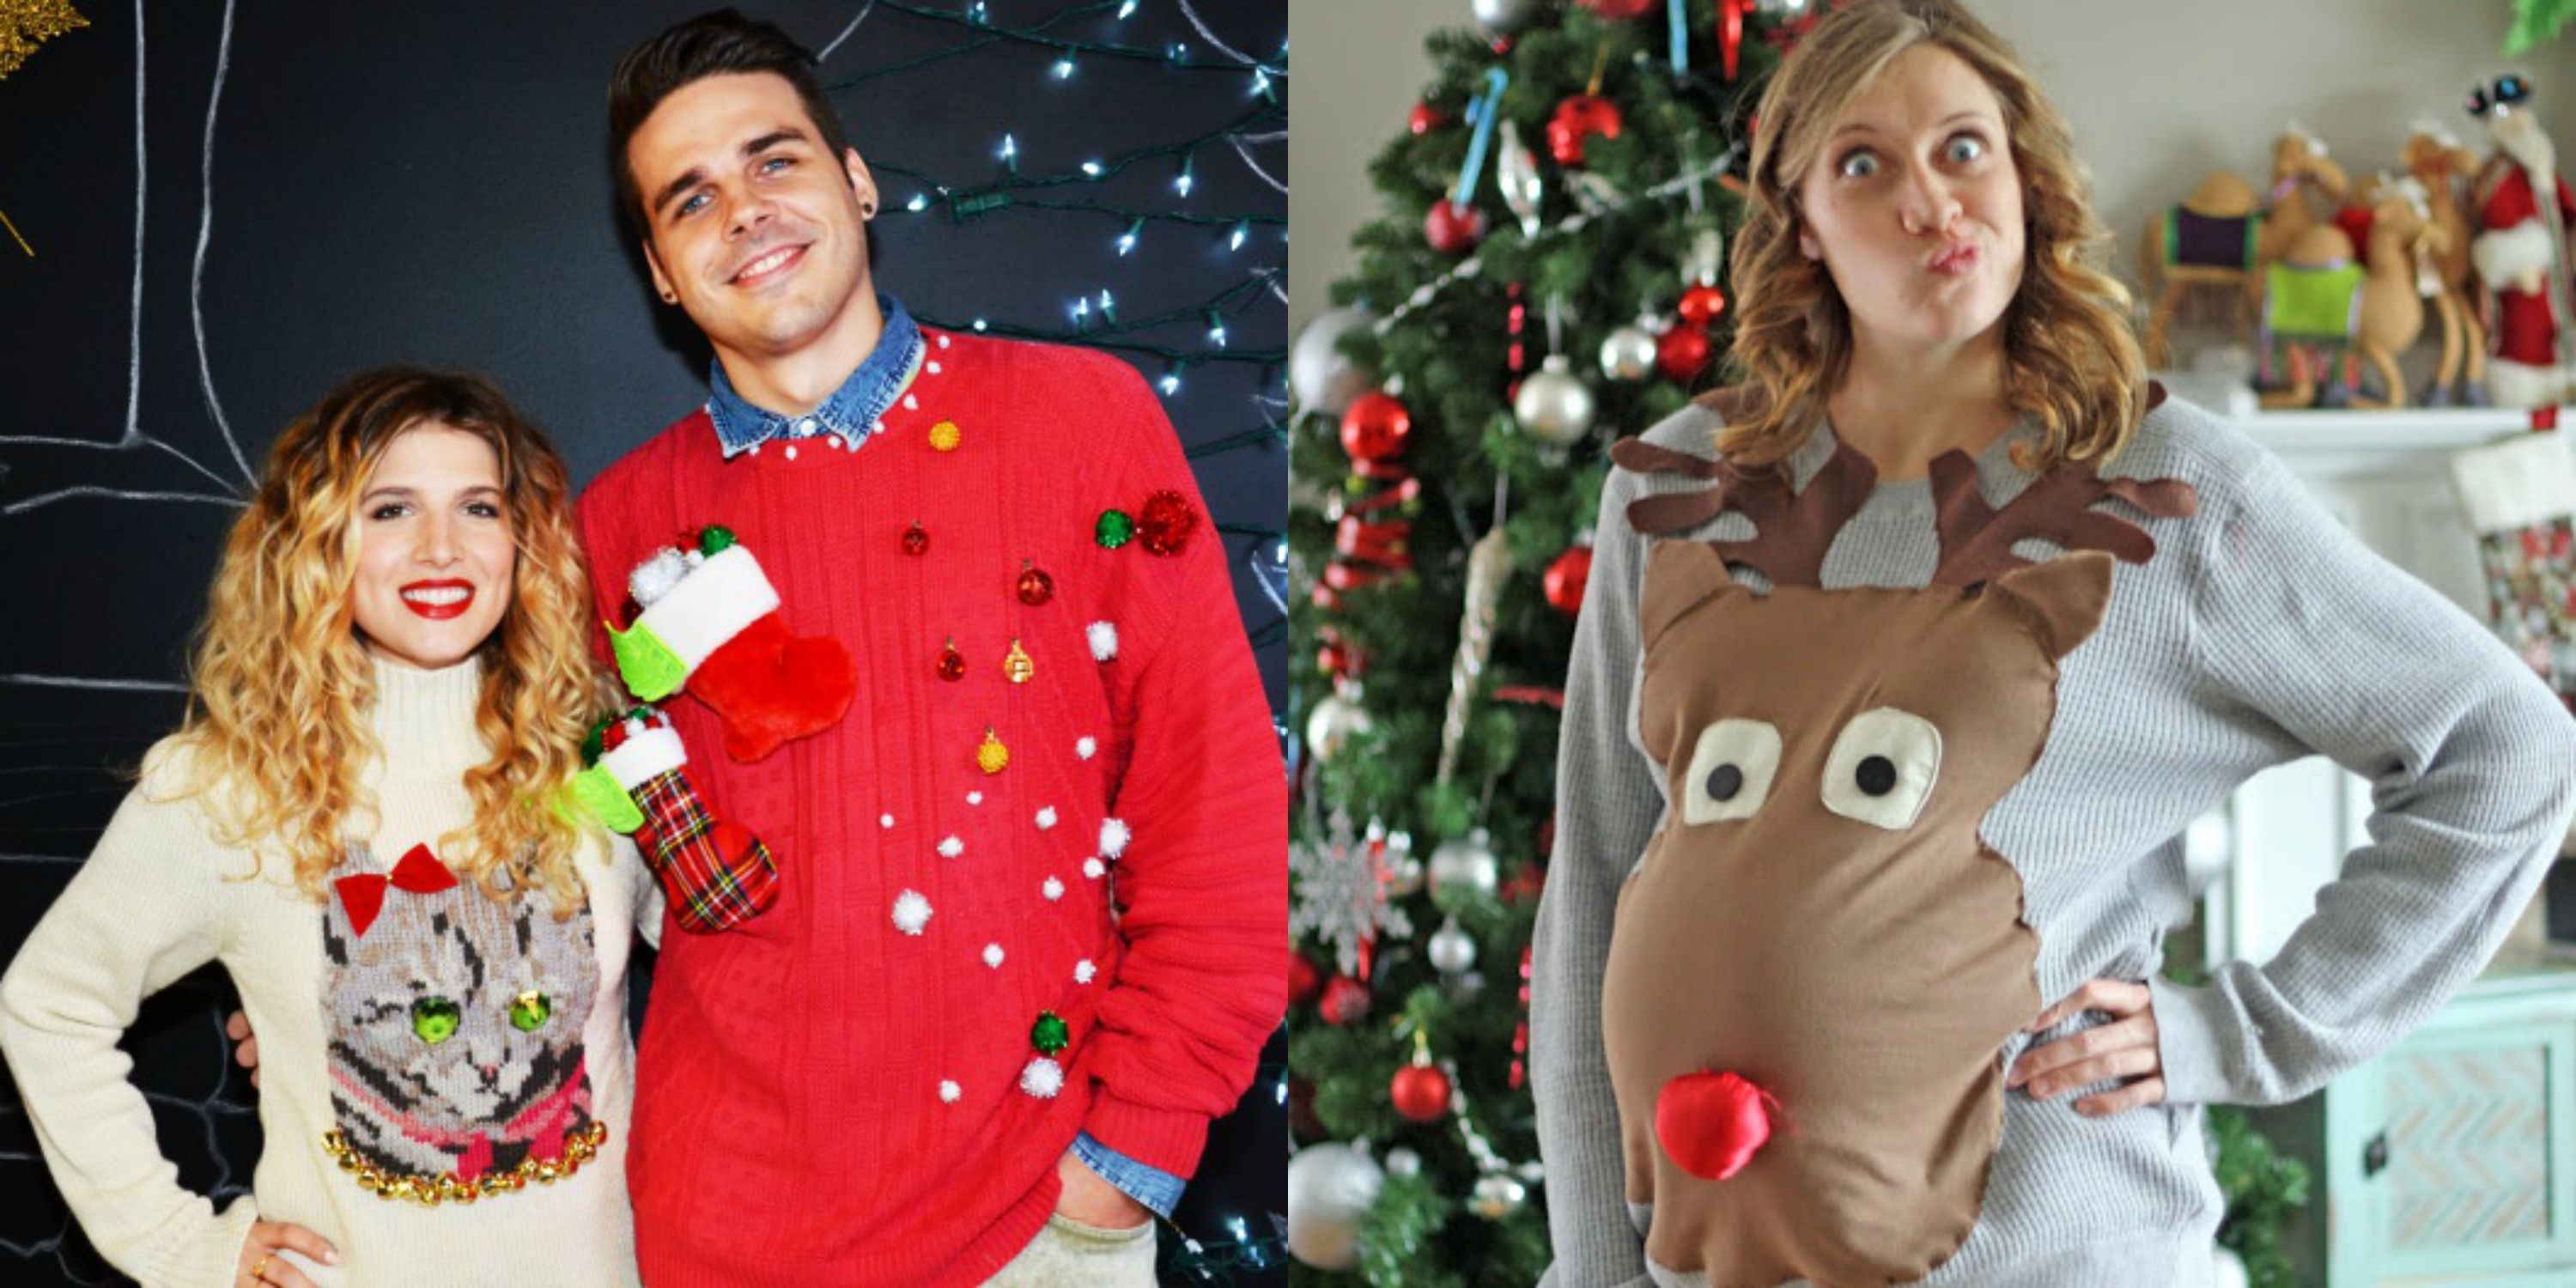 17 ugly christmas sweaters to buy or diy - How To Decorate A Ugly Christmas Sweater